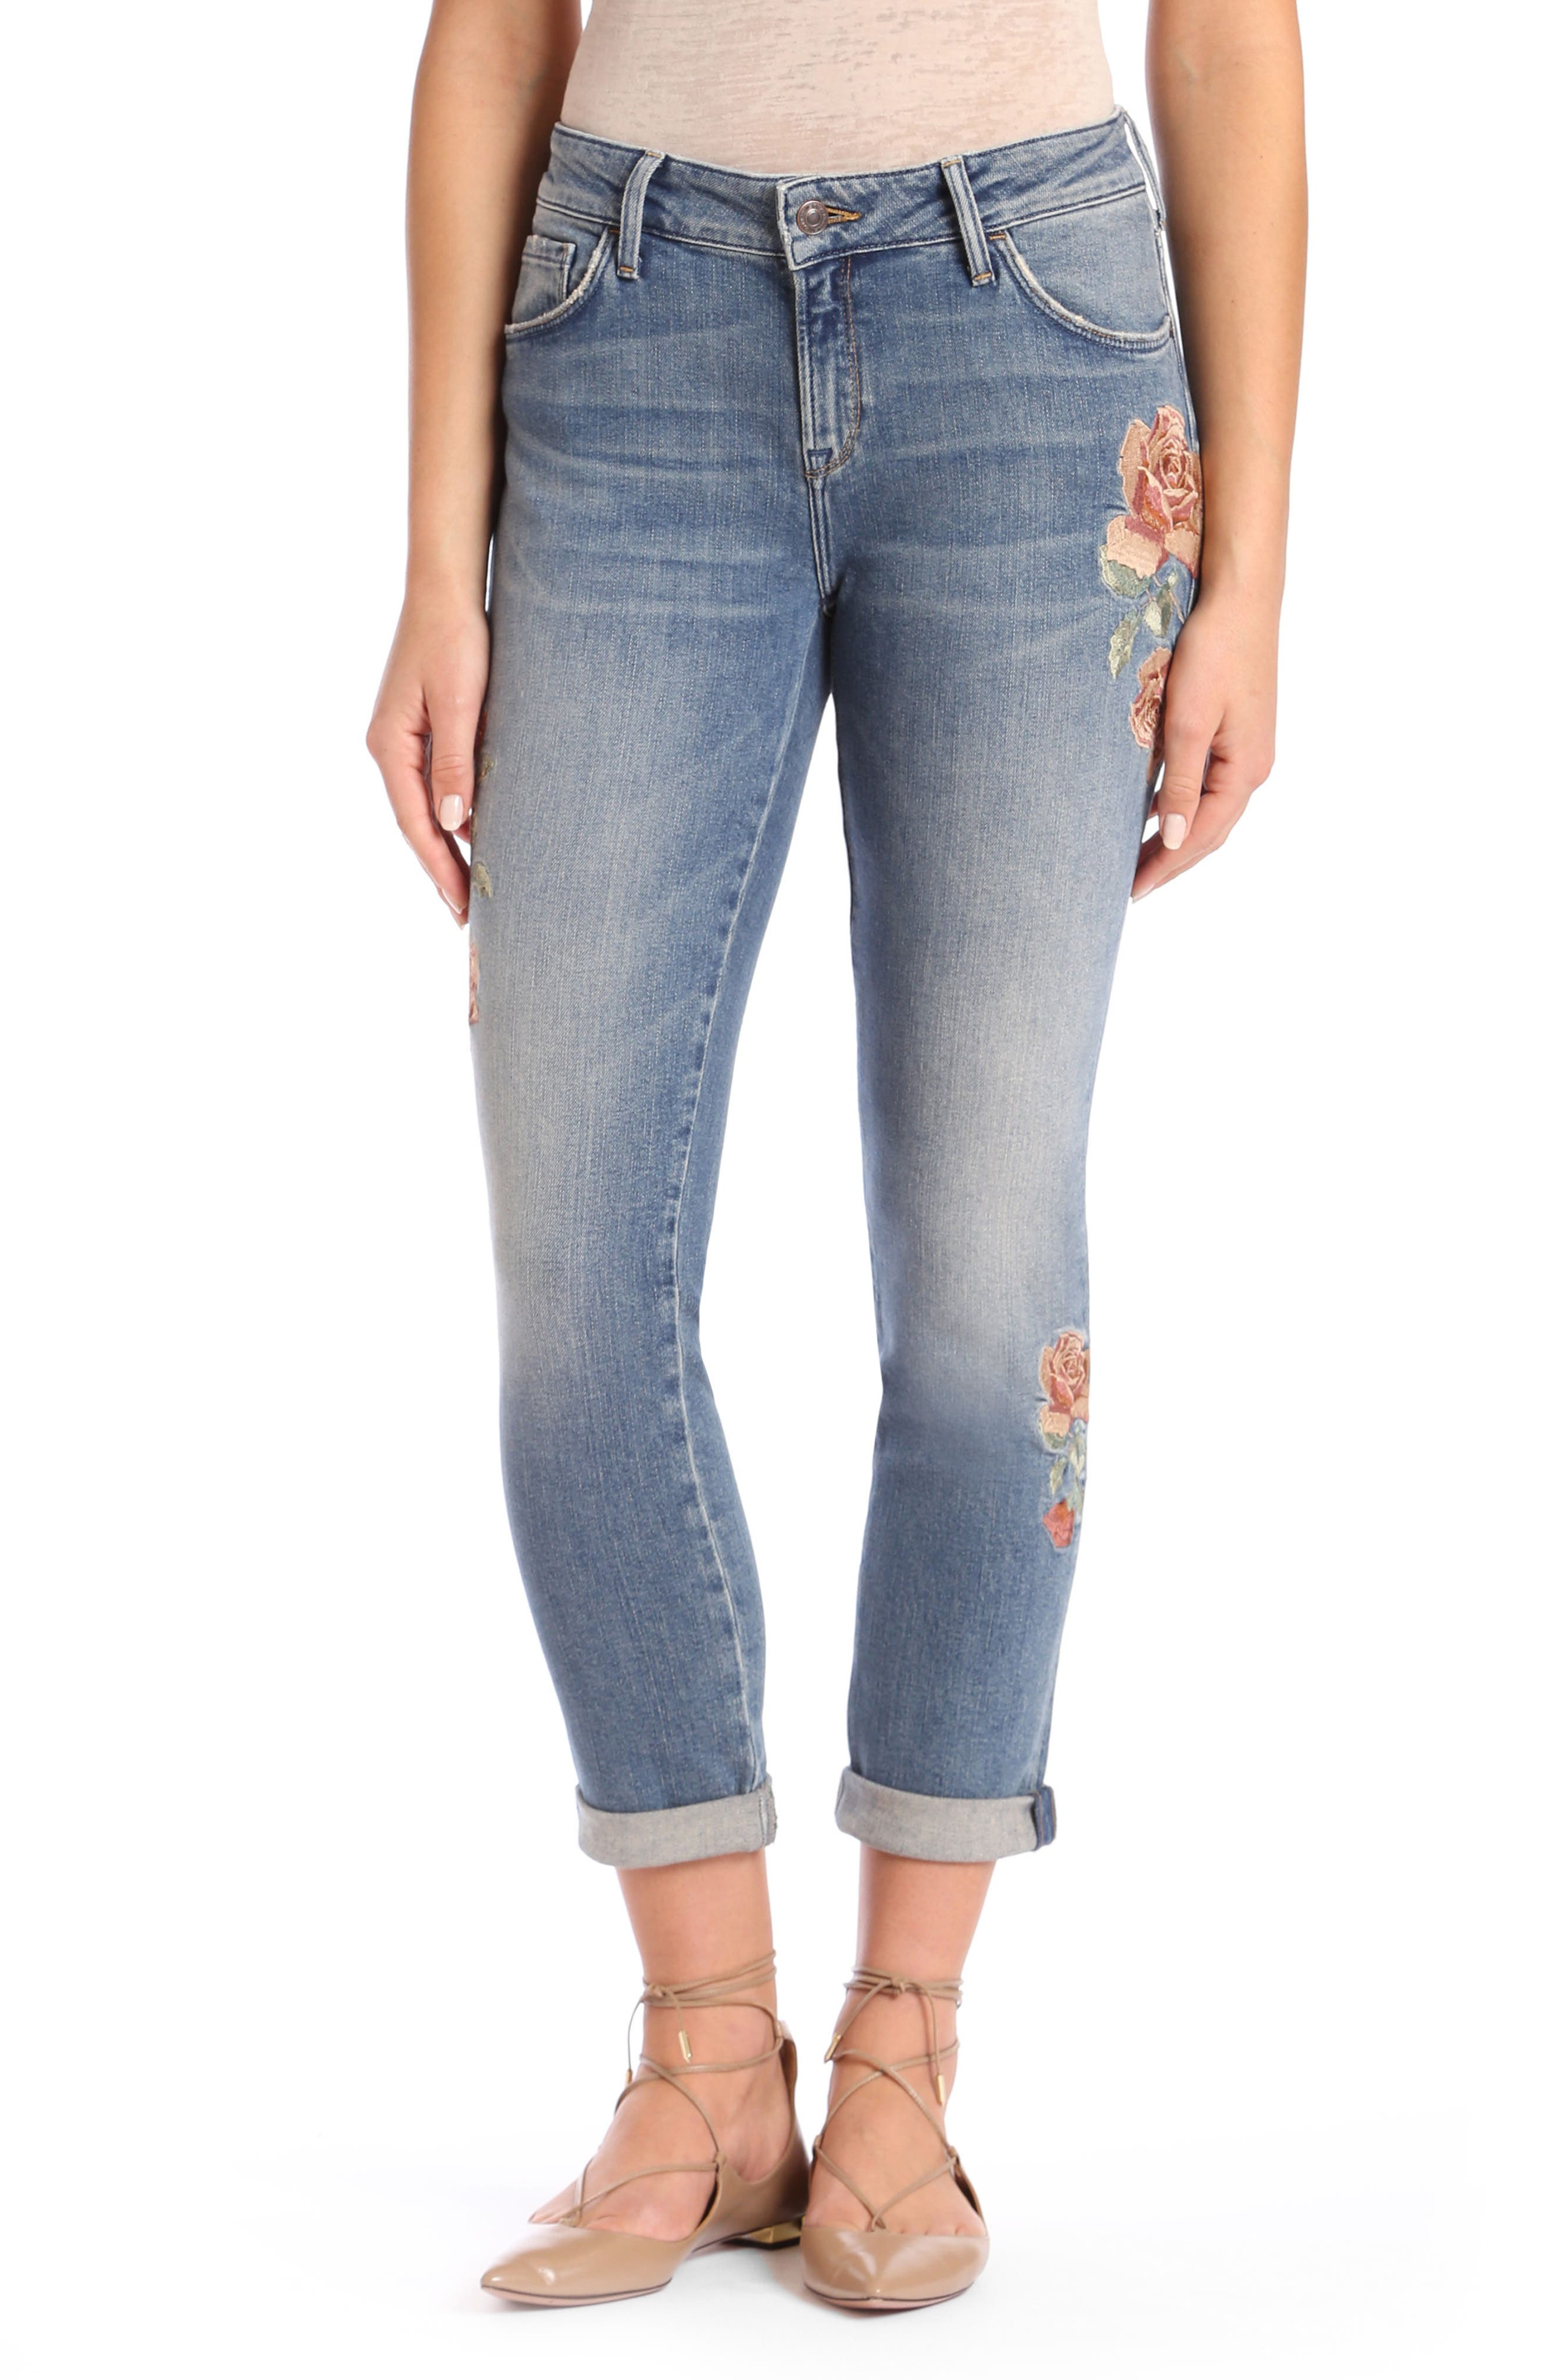 Ada Embroidered Boyfriend Jeans,                         Main,                         color, Mid Rose Embroidery